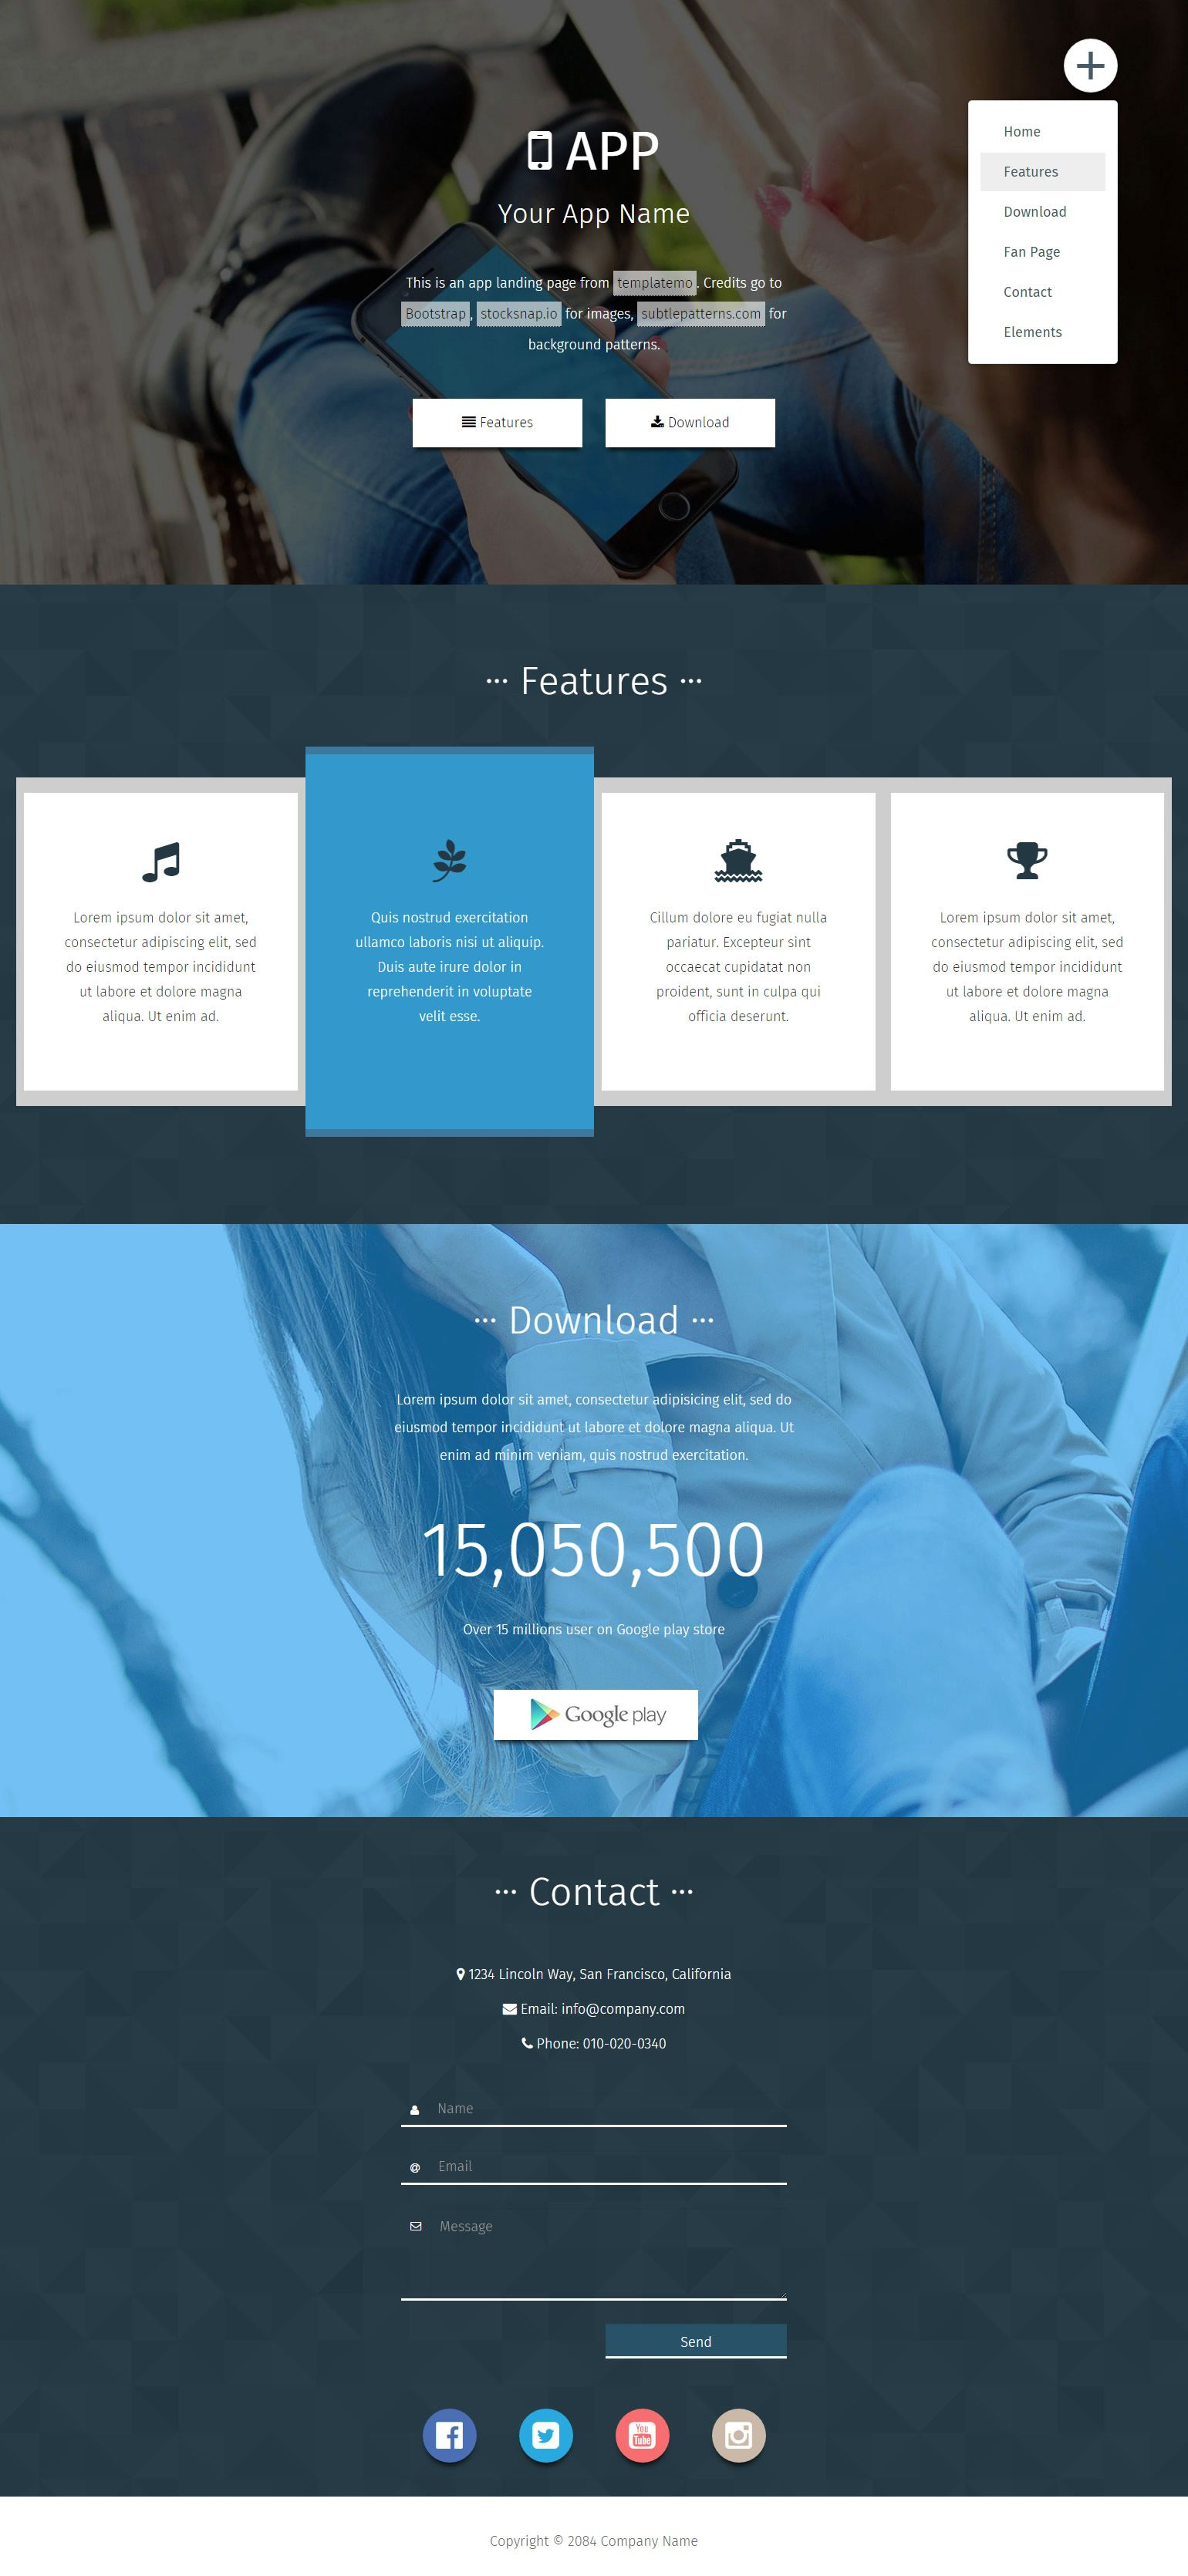 App Landing Page Includes Feature Download And Contact Sections Bootstrap V3 3 1 Theme Css Templates Css Website Templates Html And Css Templates